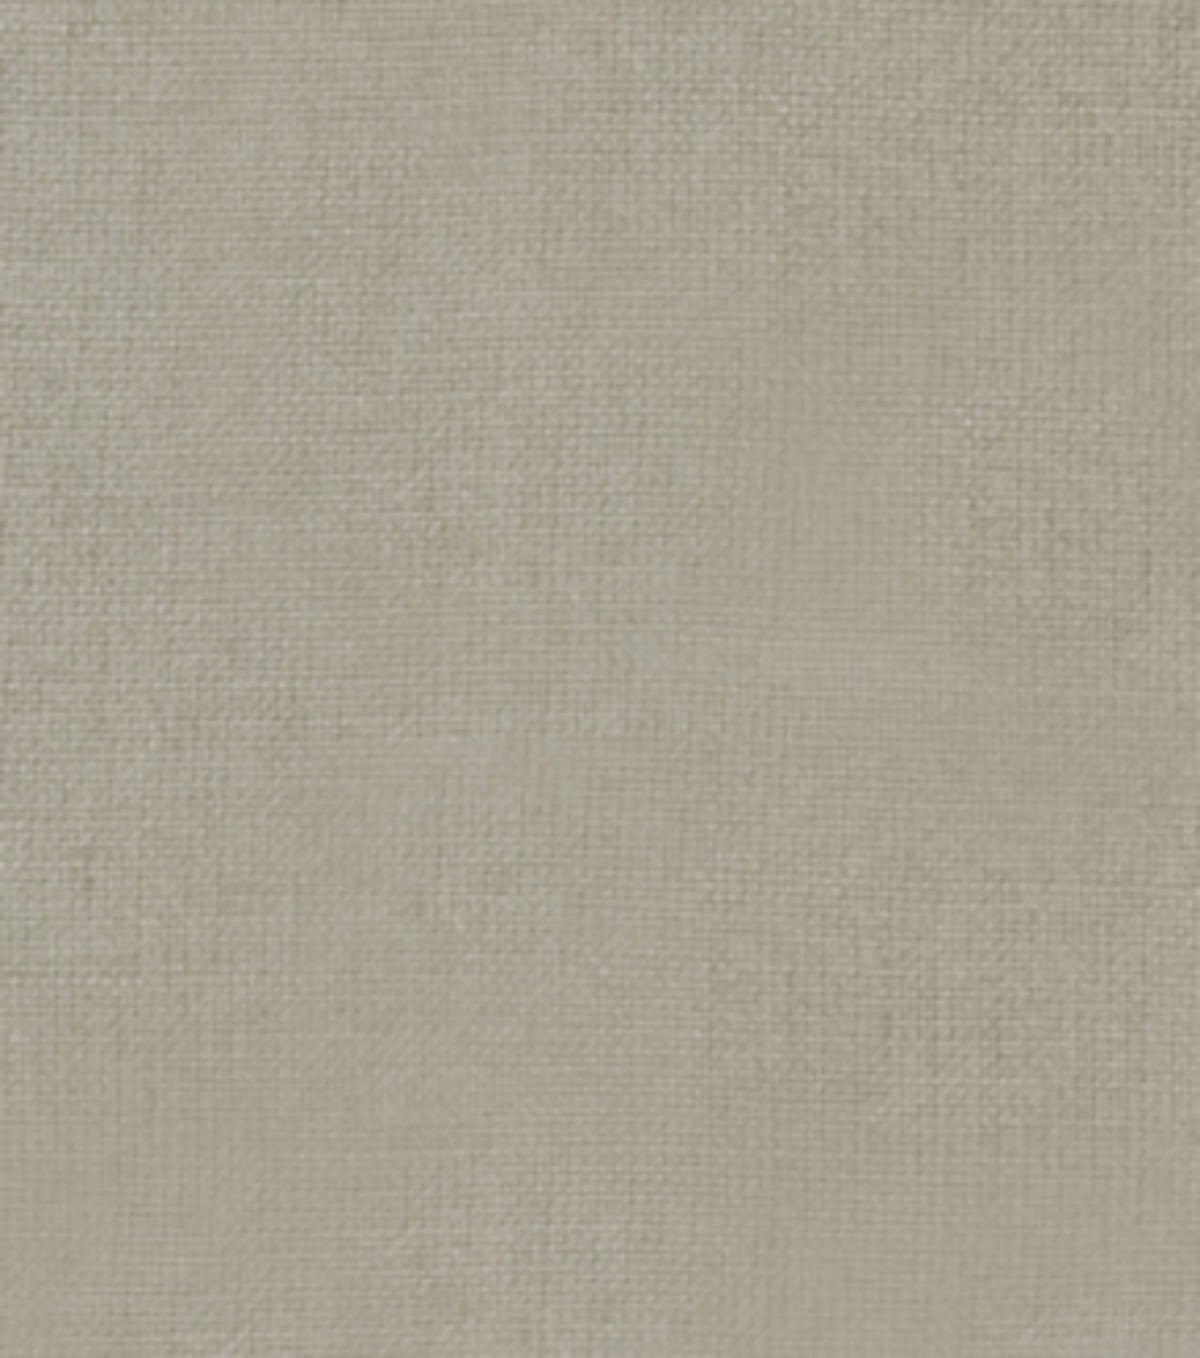 Home Decor 8\u0022x8\u0022 Fabric Swatch-Signature Series Sigourney Taupe